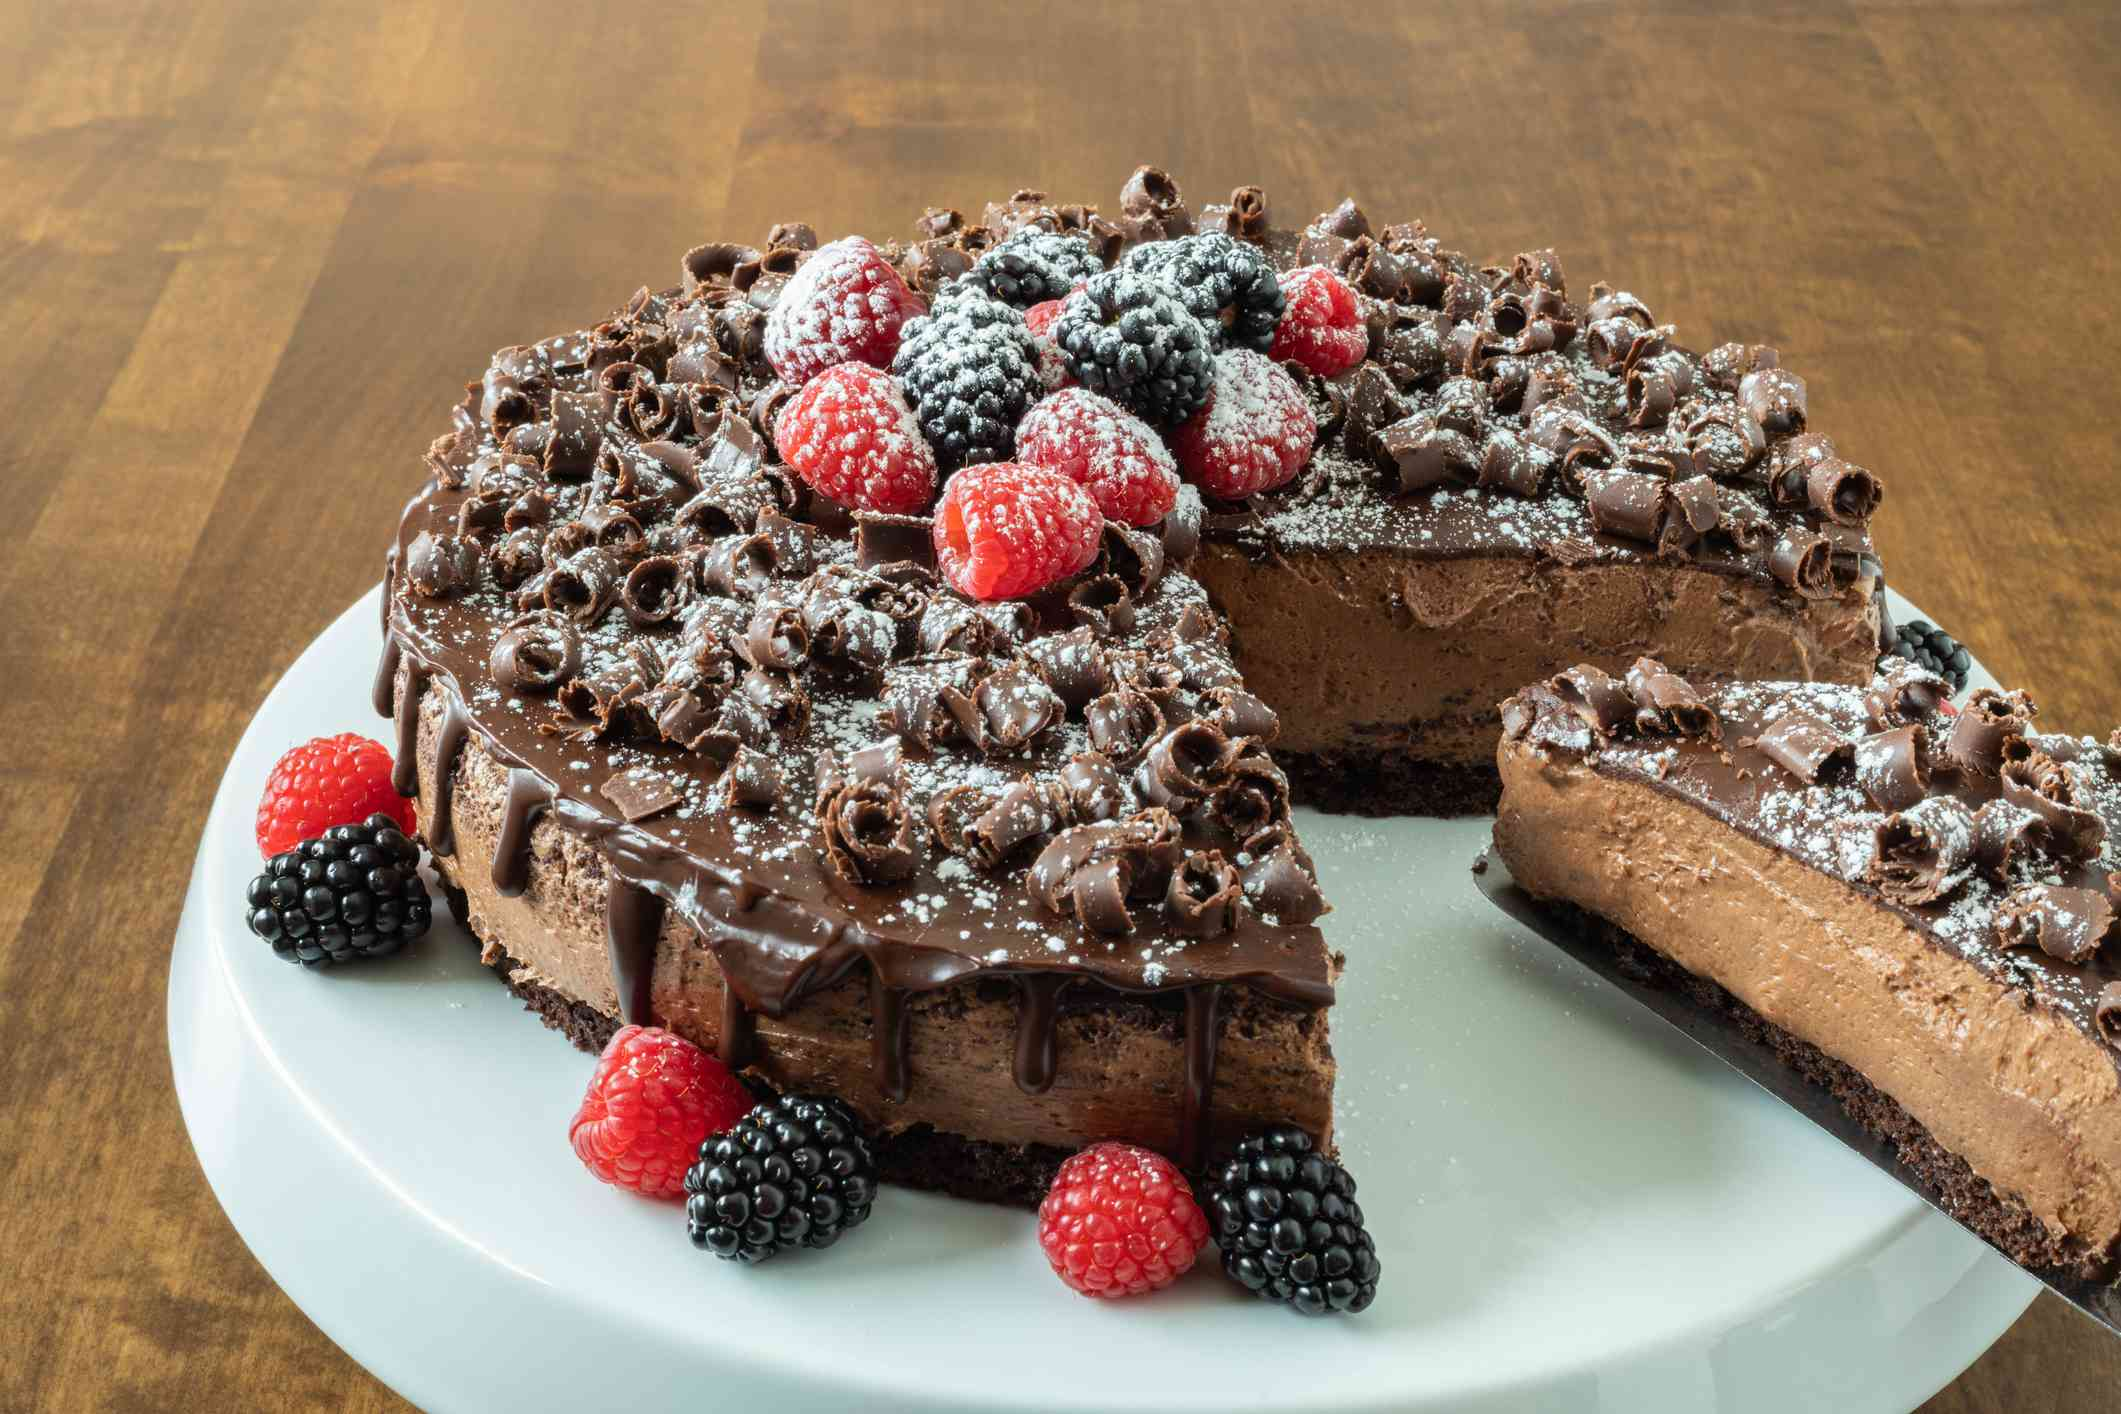 Chocolate mousse cake with chocolate ganache and topped with raspberries, blackberries and chocolate curls